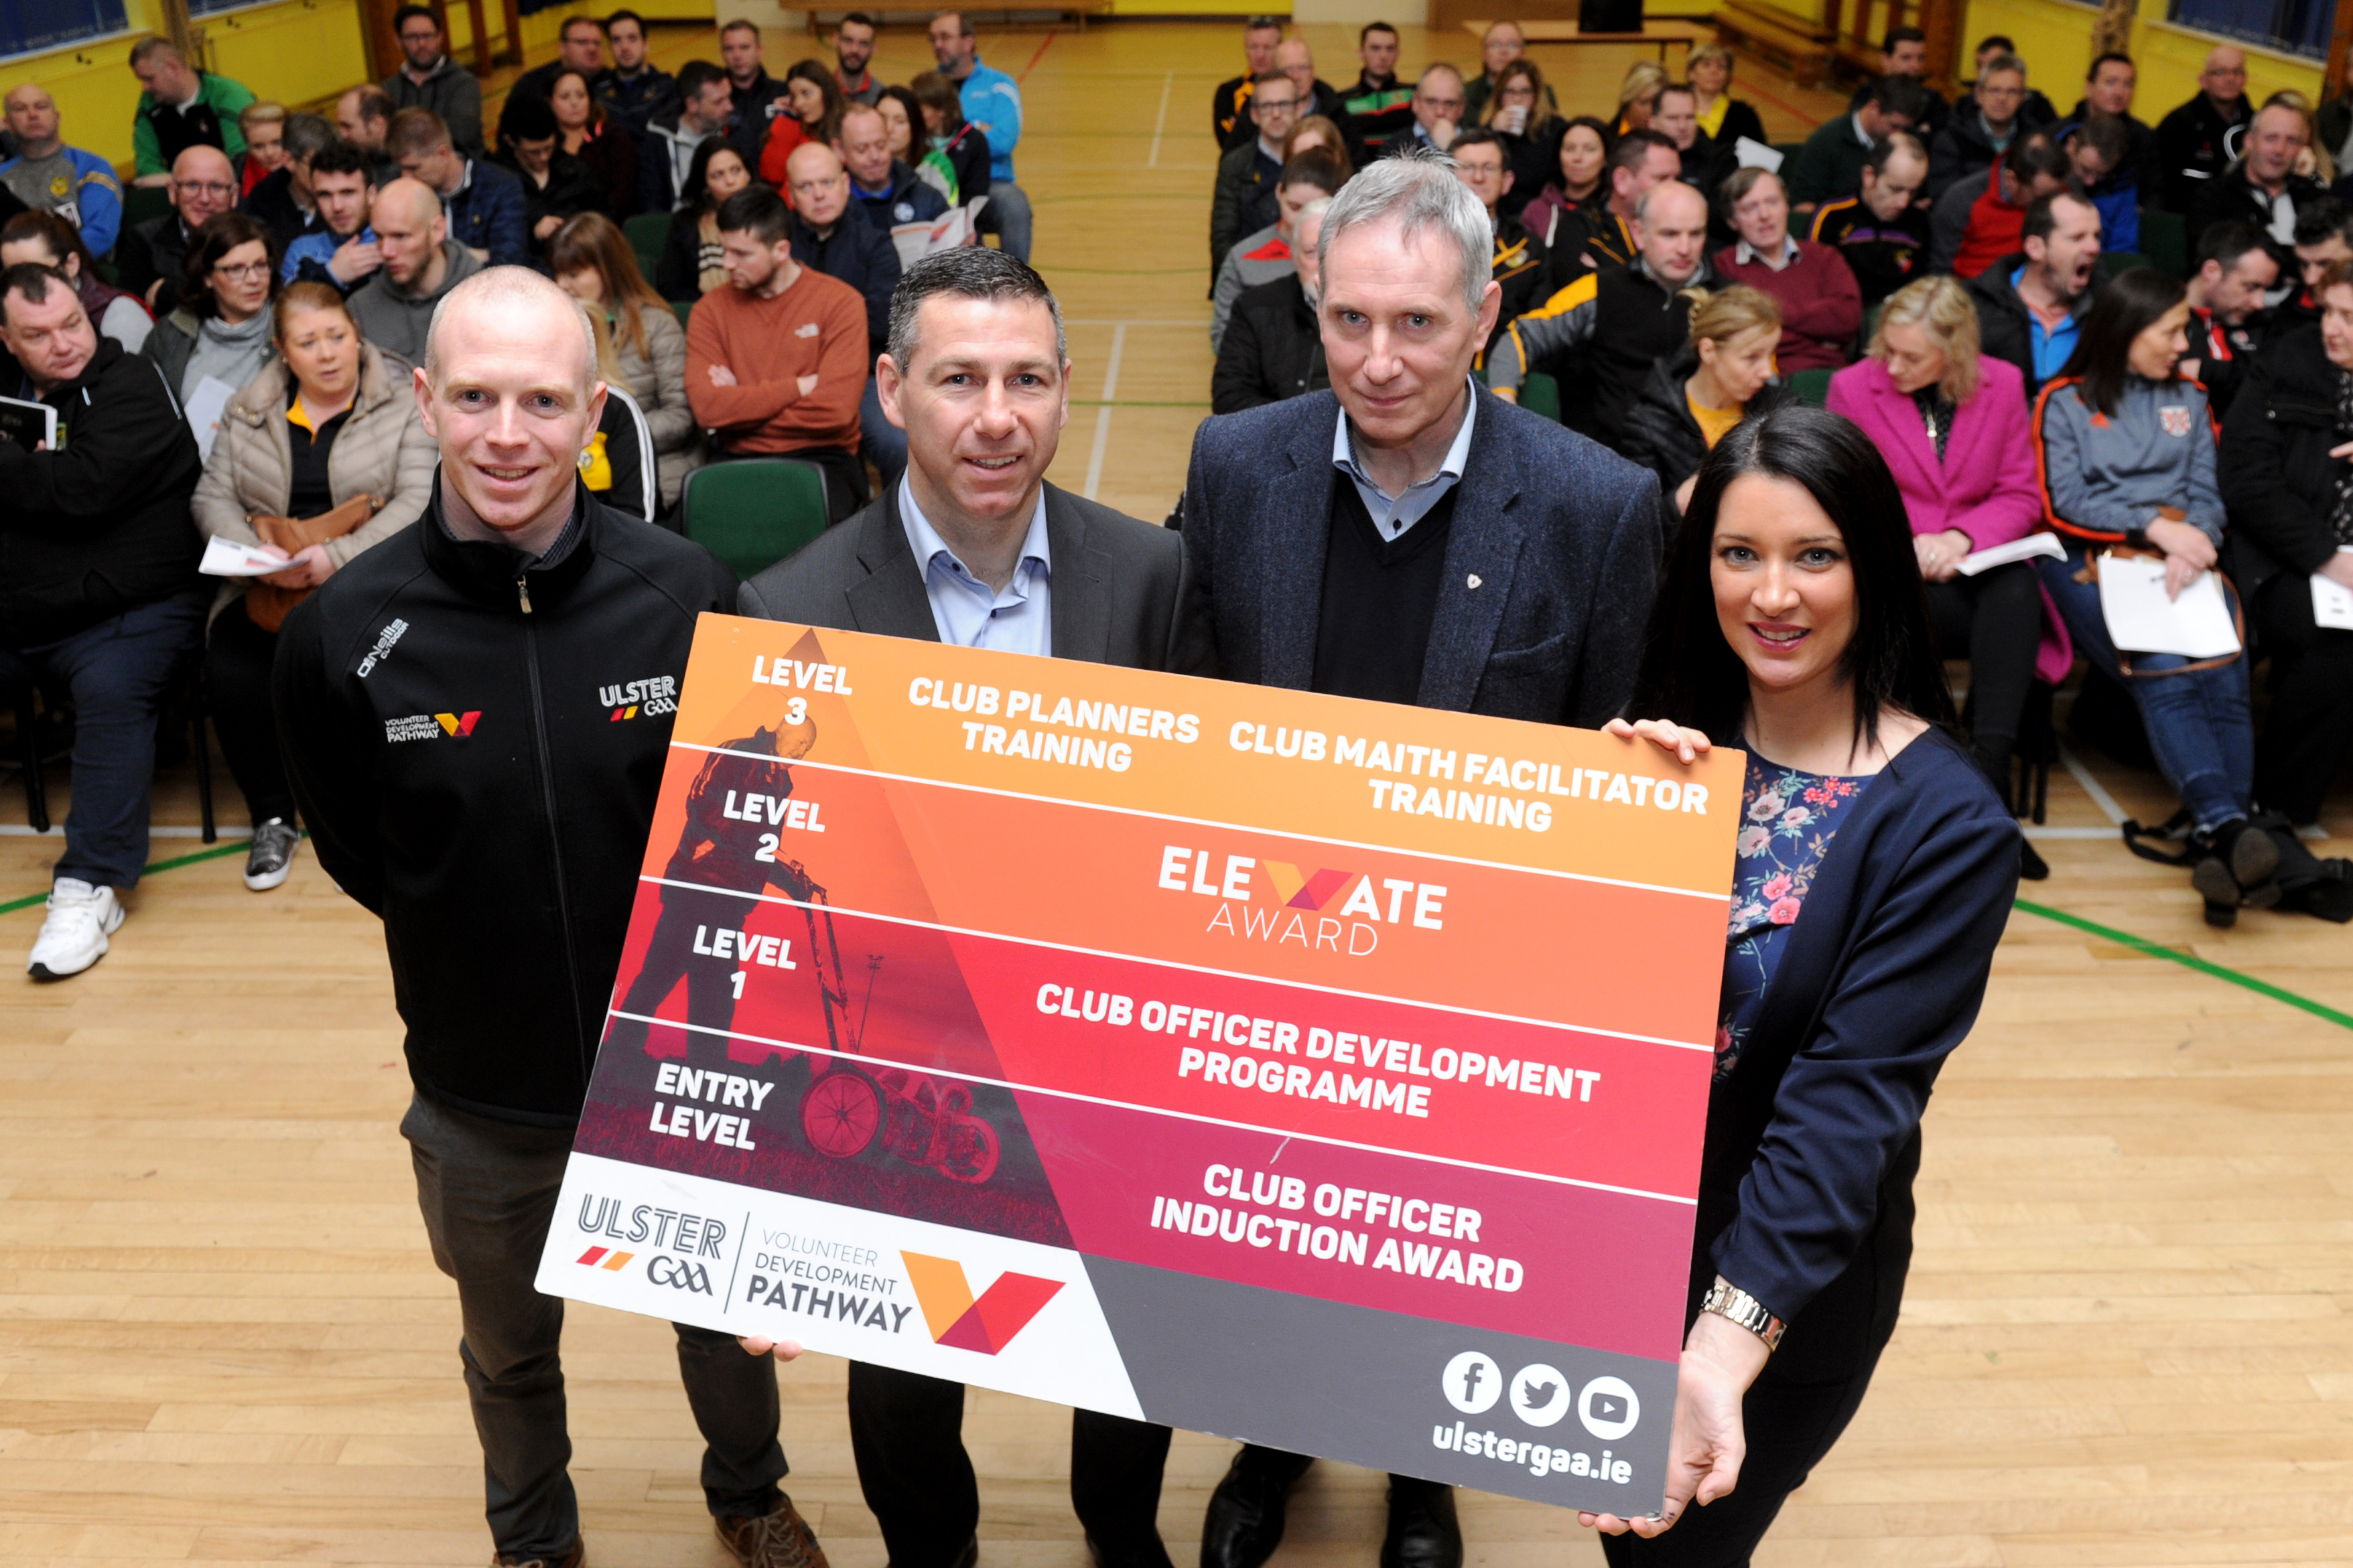 Ulster GAA looking outstanding Clubs for Elevate Award